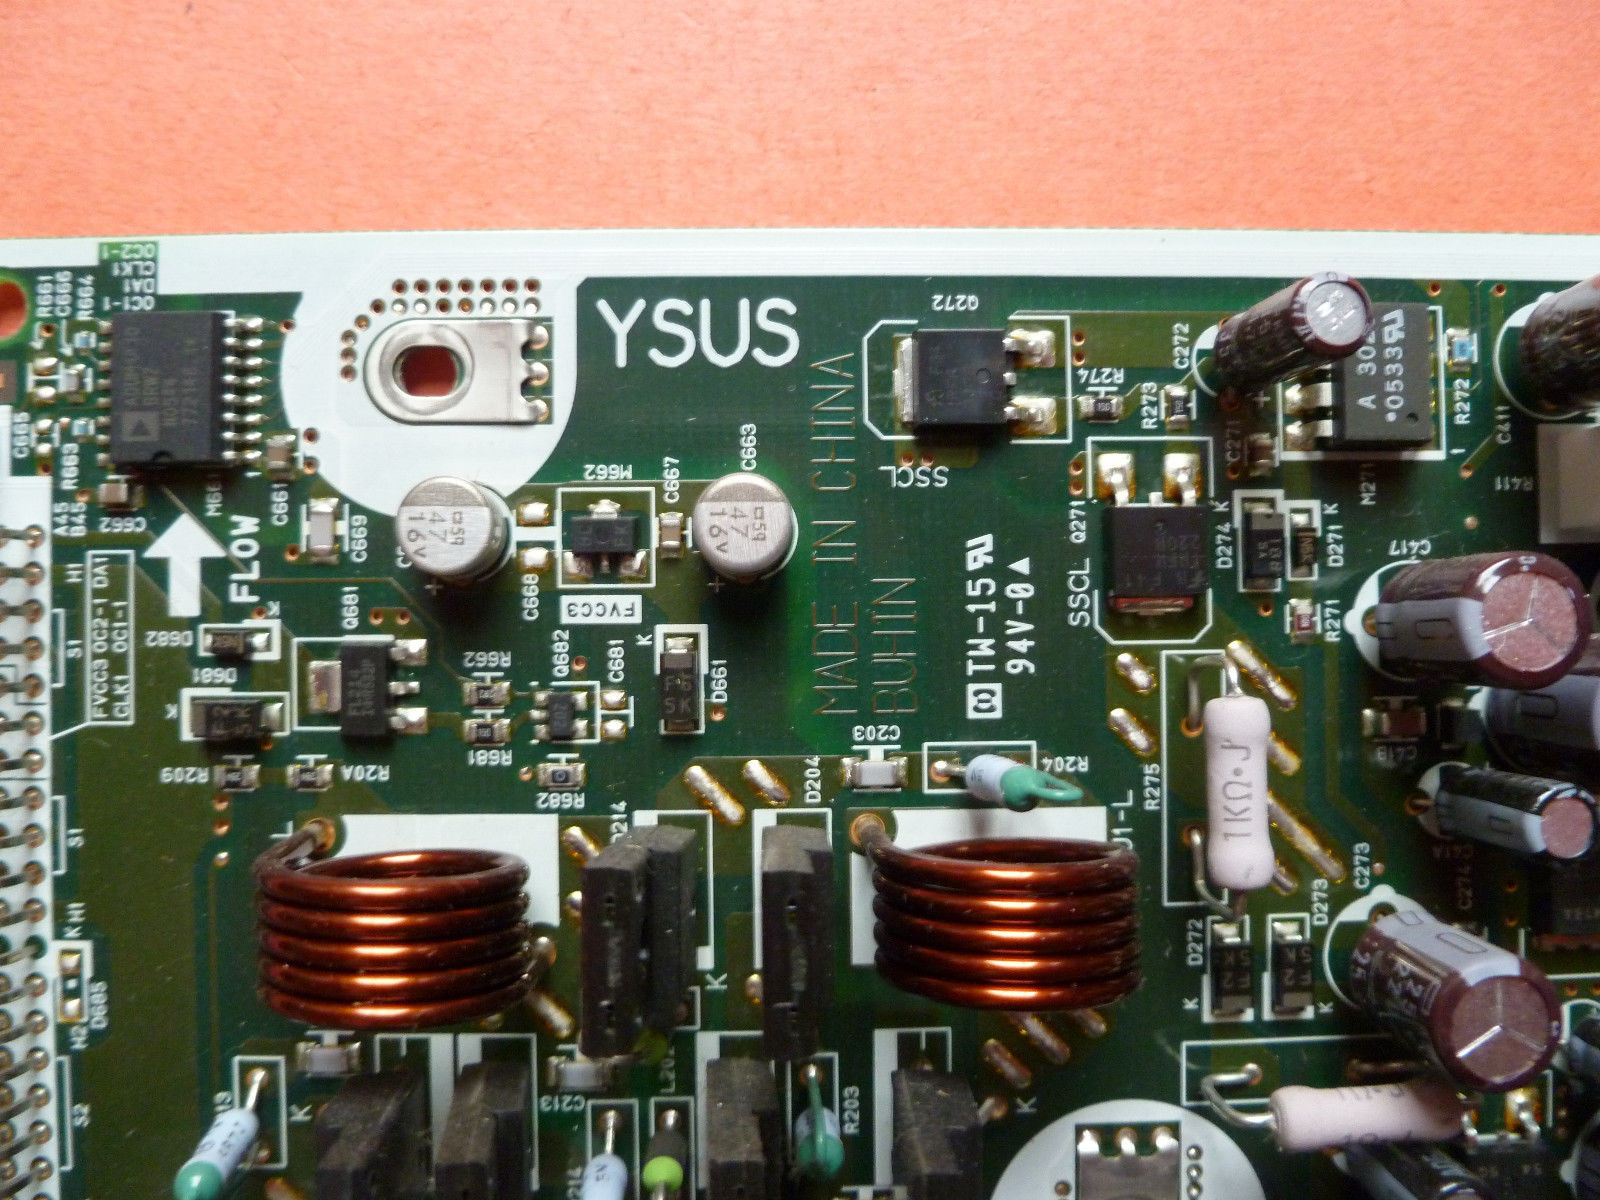 TV YSUS BOARD ND60200-0038 FROM AKAI PDP4225M